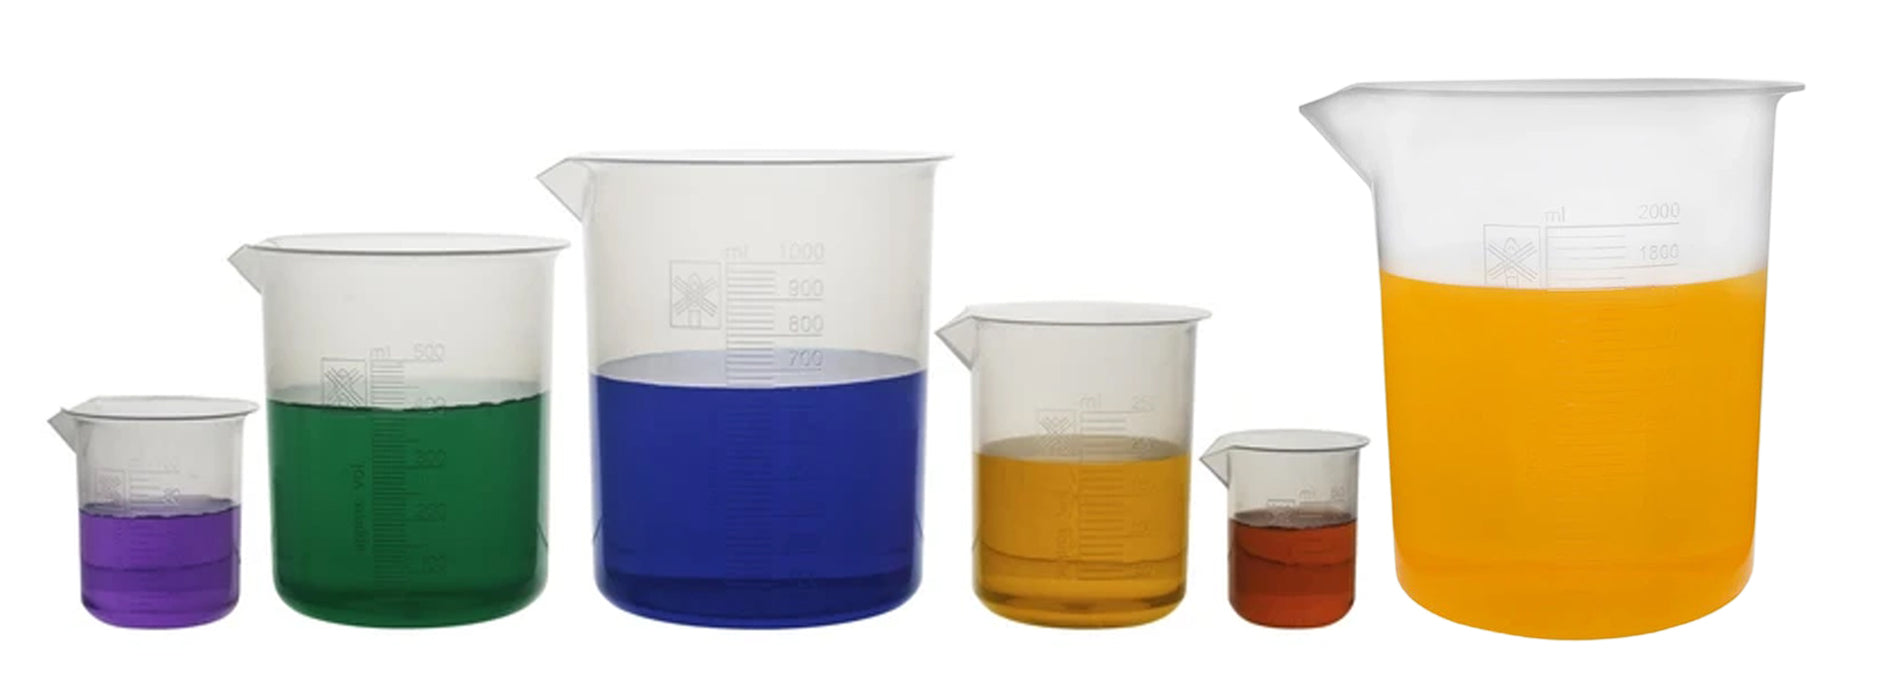 6 Piece Beaker Set, Polypropylene - 50ml, 100ml, 250ml, 500ml, 1000ml & 2000ml - Raised Graduations - With Spout